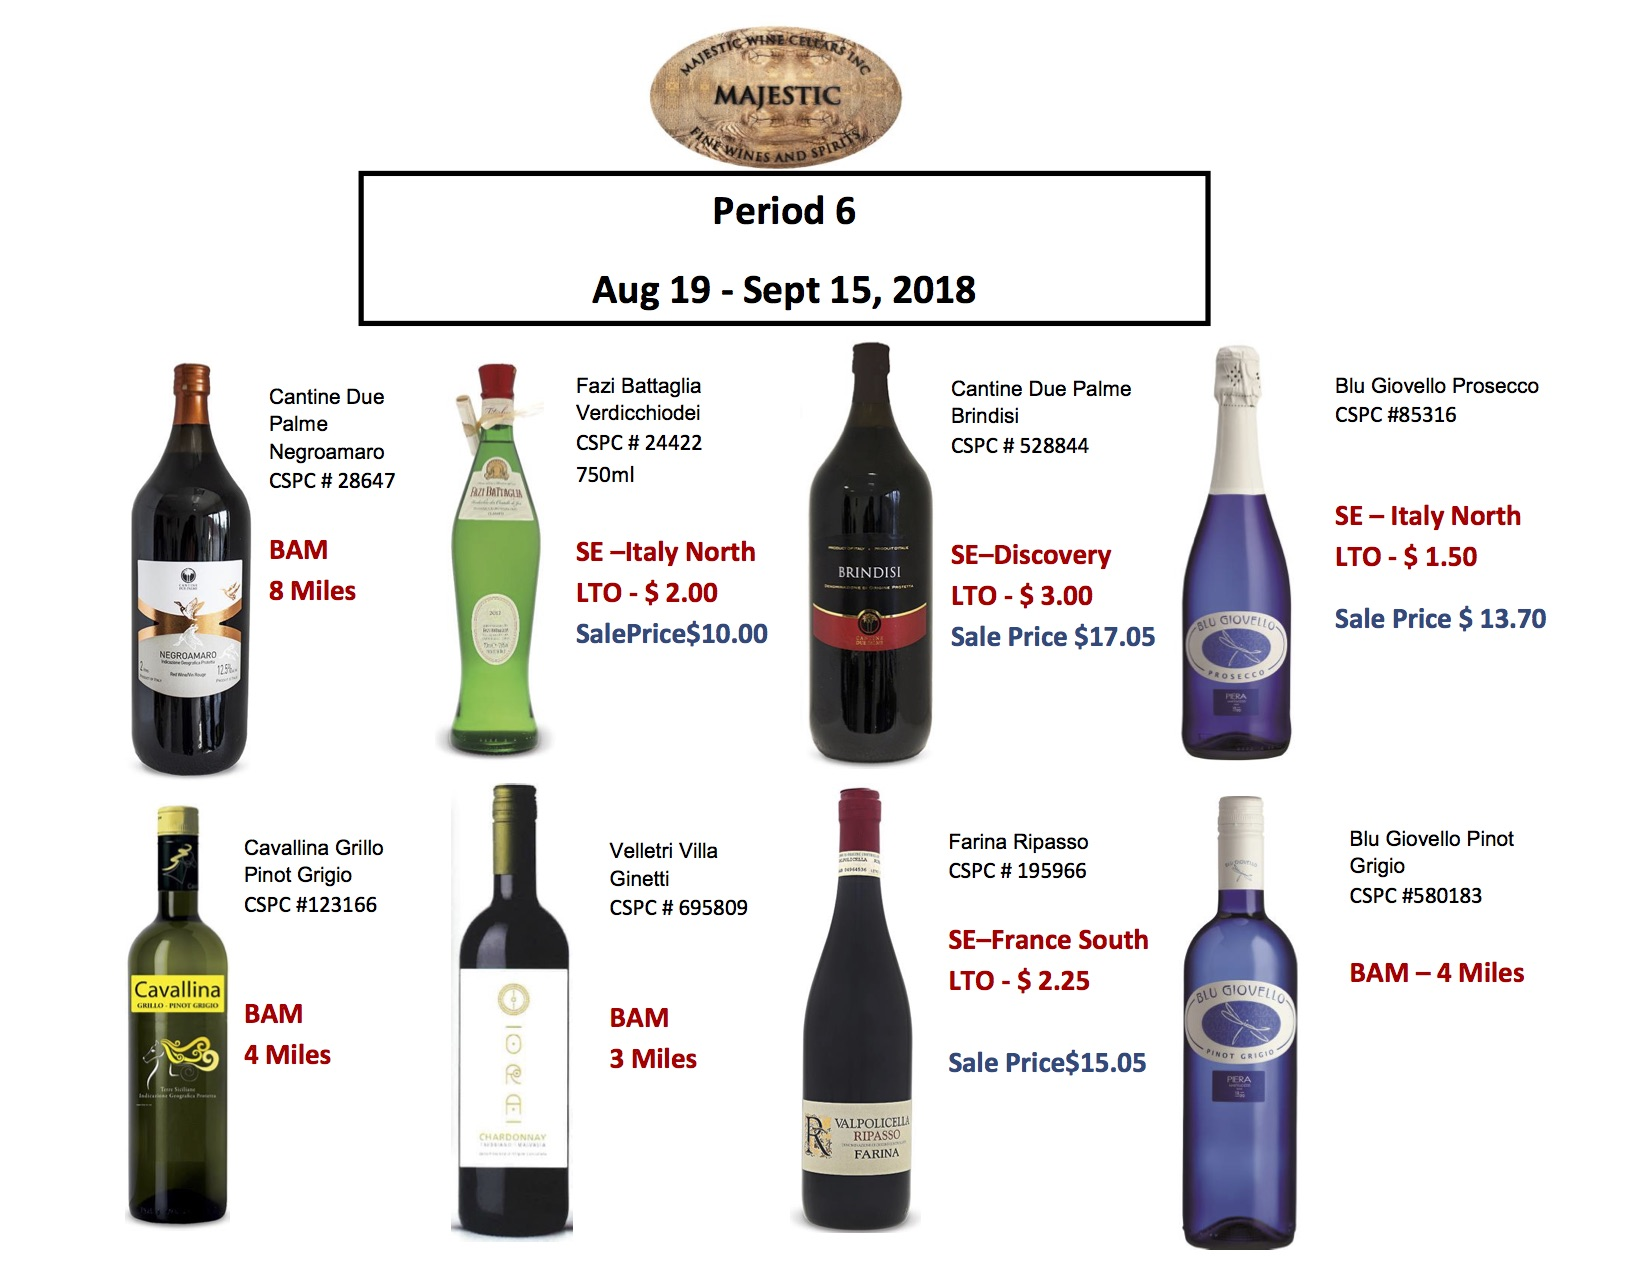 Period 6: Aug 19 - Sept 15, 2018 Promotion